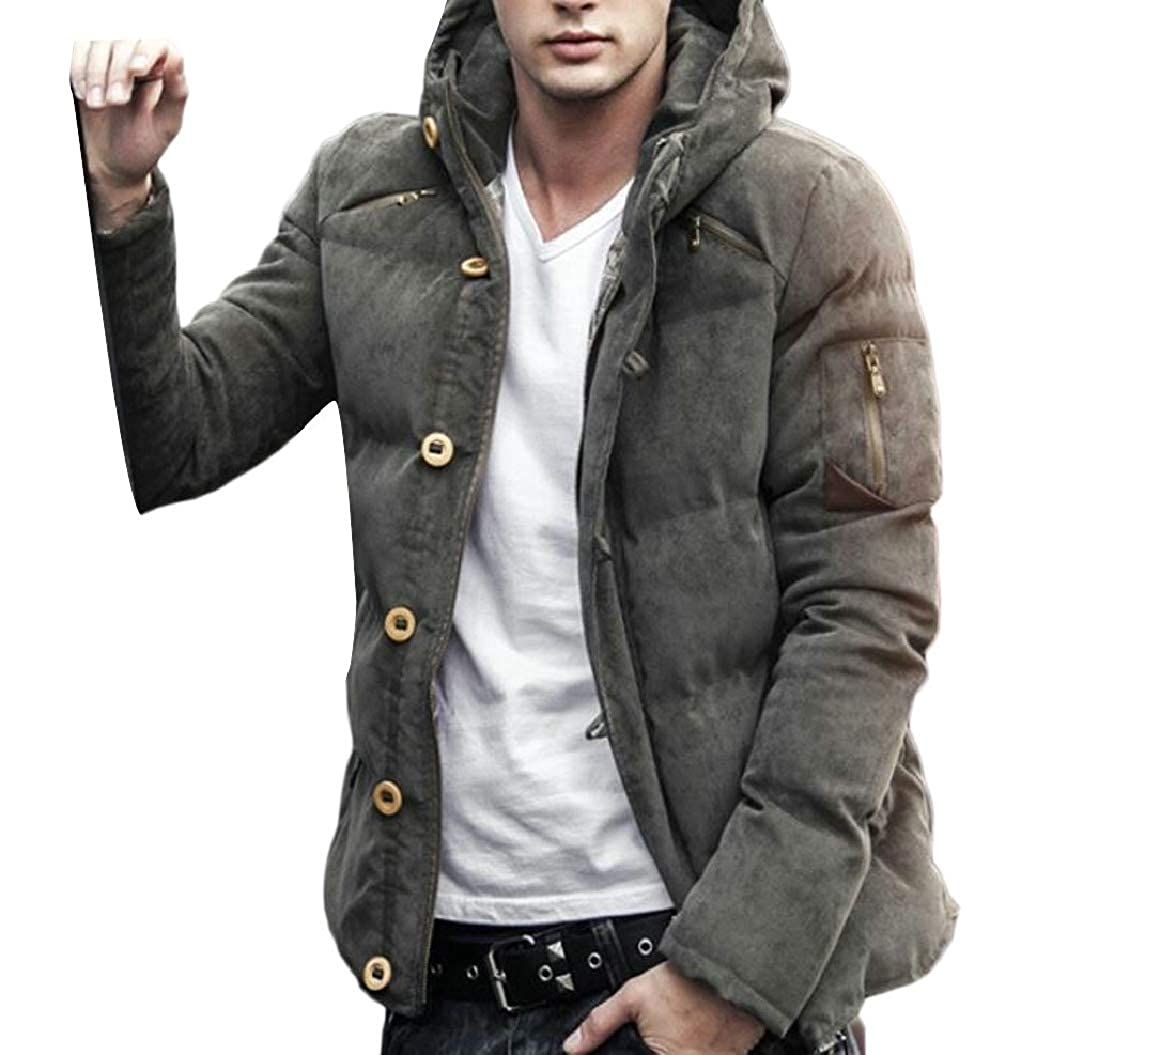 Smeiling Men Thicken Warm Hooded Quilted Corduroy Padded Coats Puffer Jacket